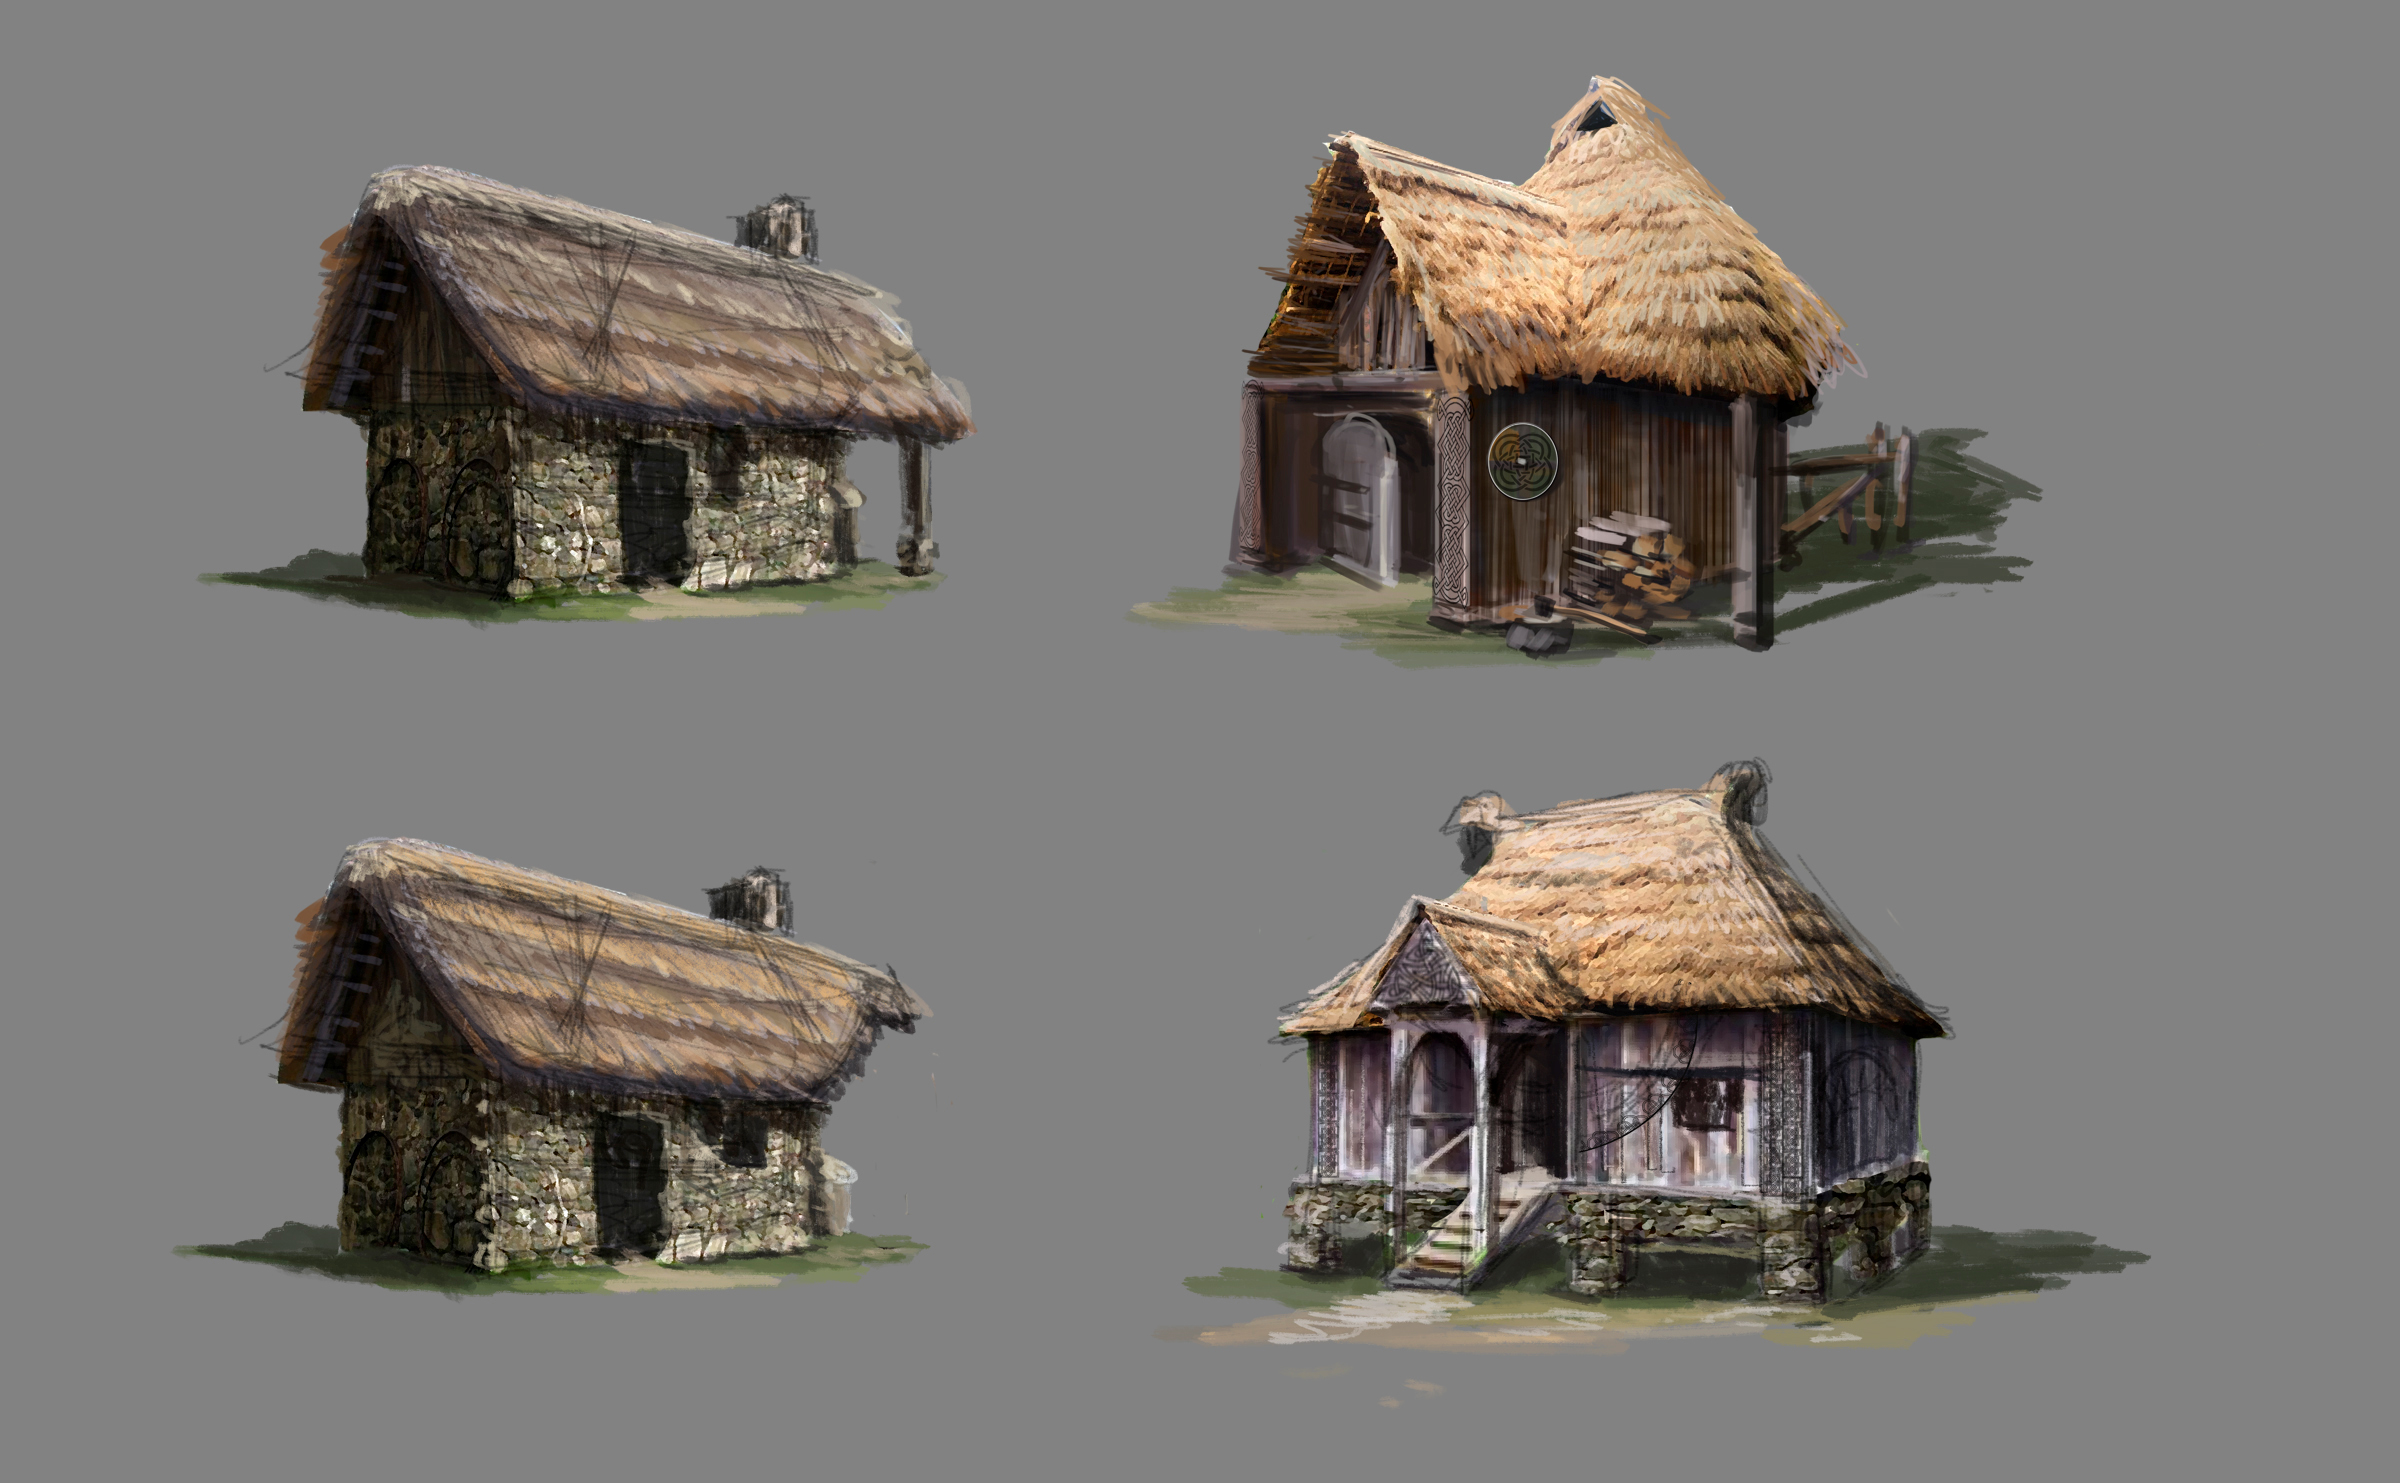 LOTRO_Riders_of_Rohan_Crofters_Huts_3